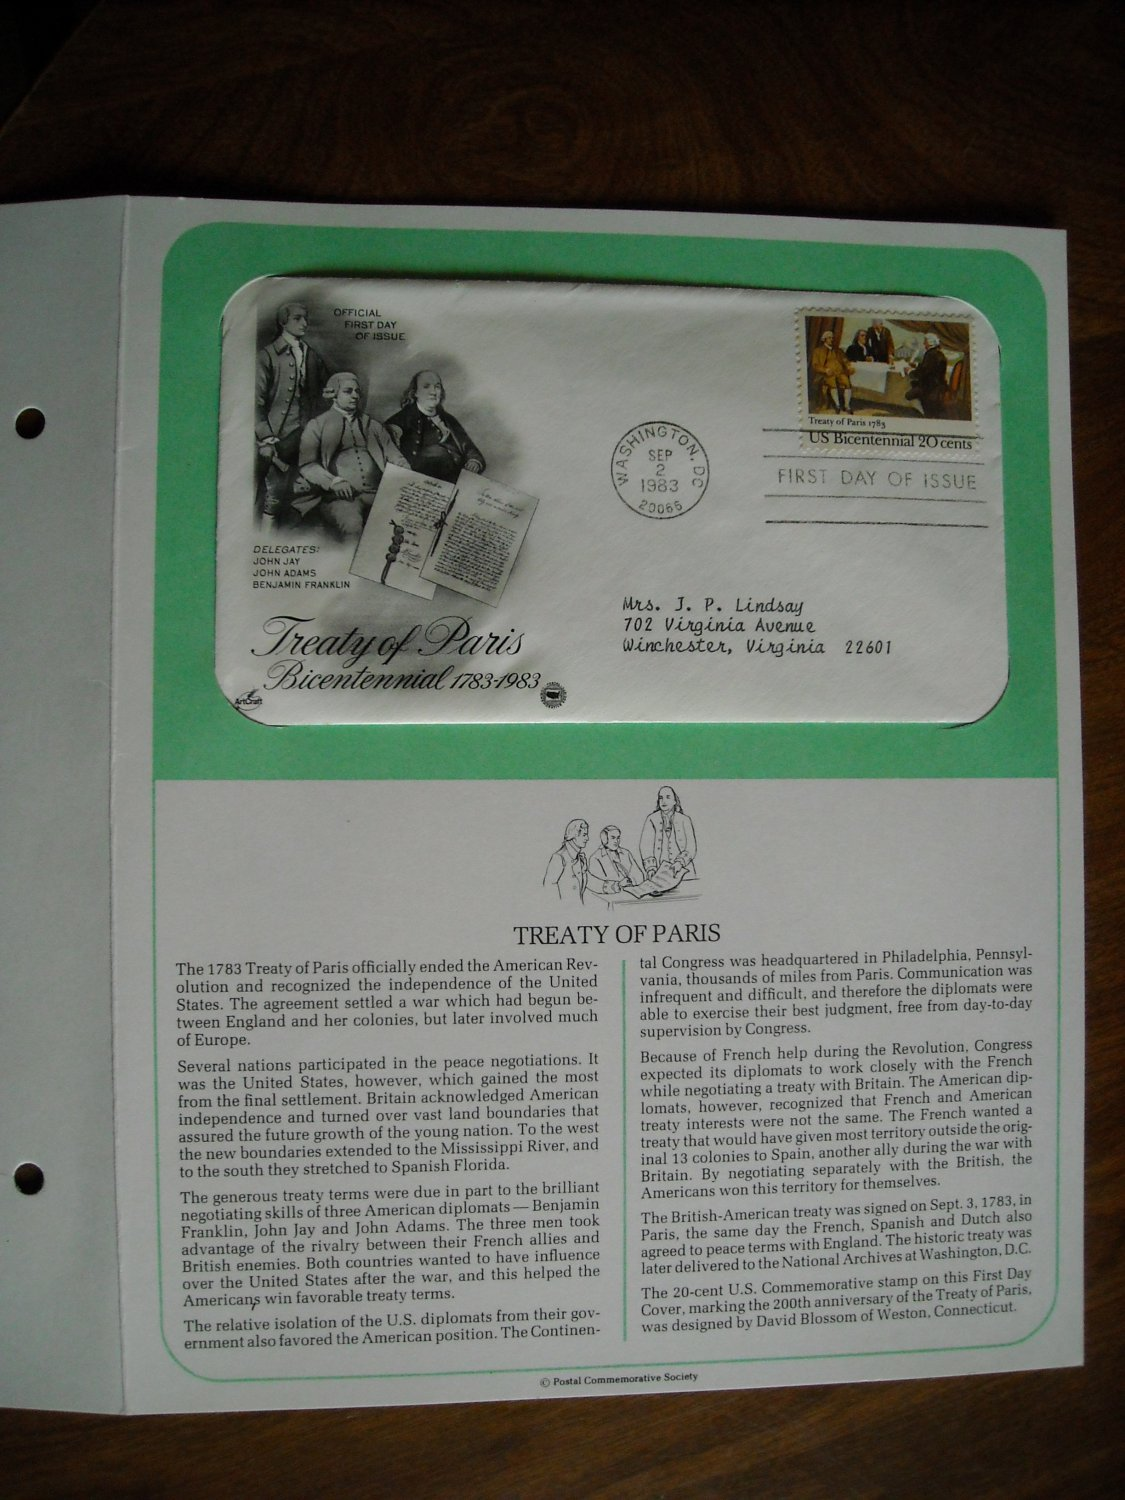 Treaty of Paris Bicentennial 1783 - 1983 Postal Commemorative Society First Day Cover Sheet